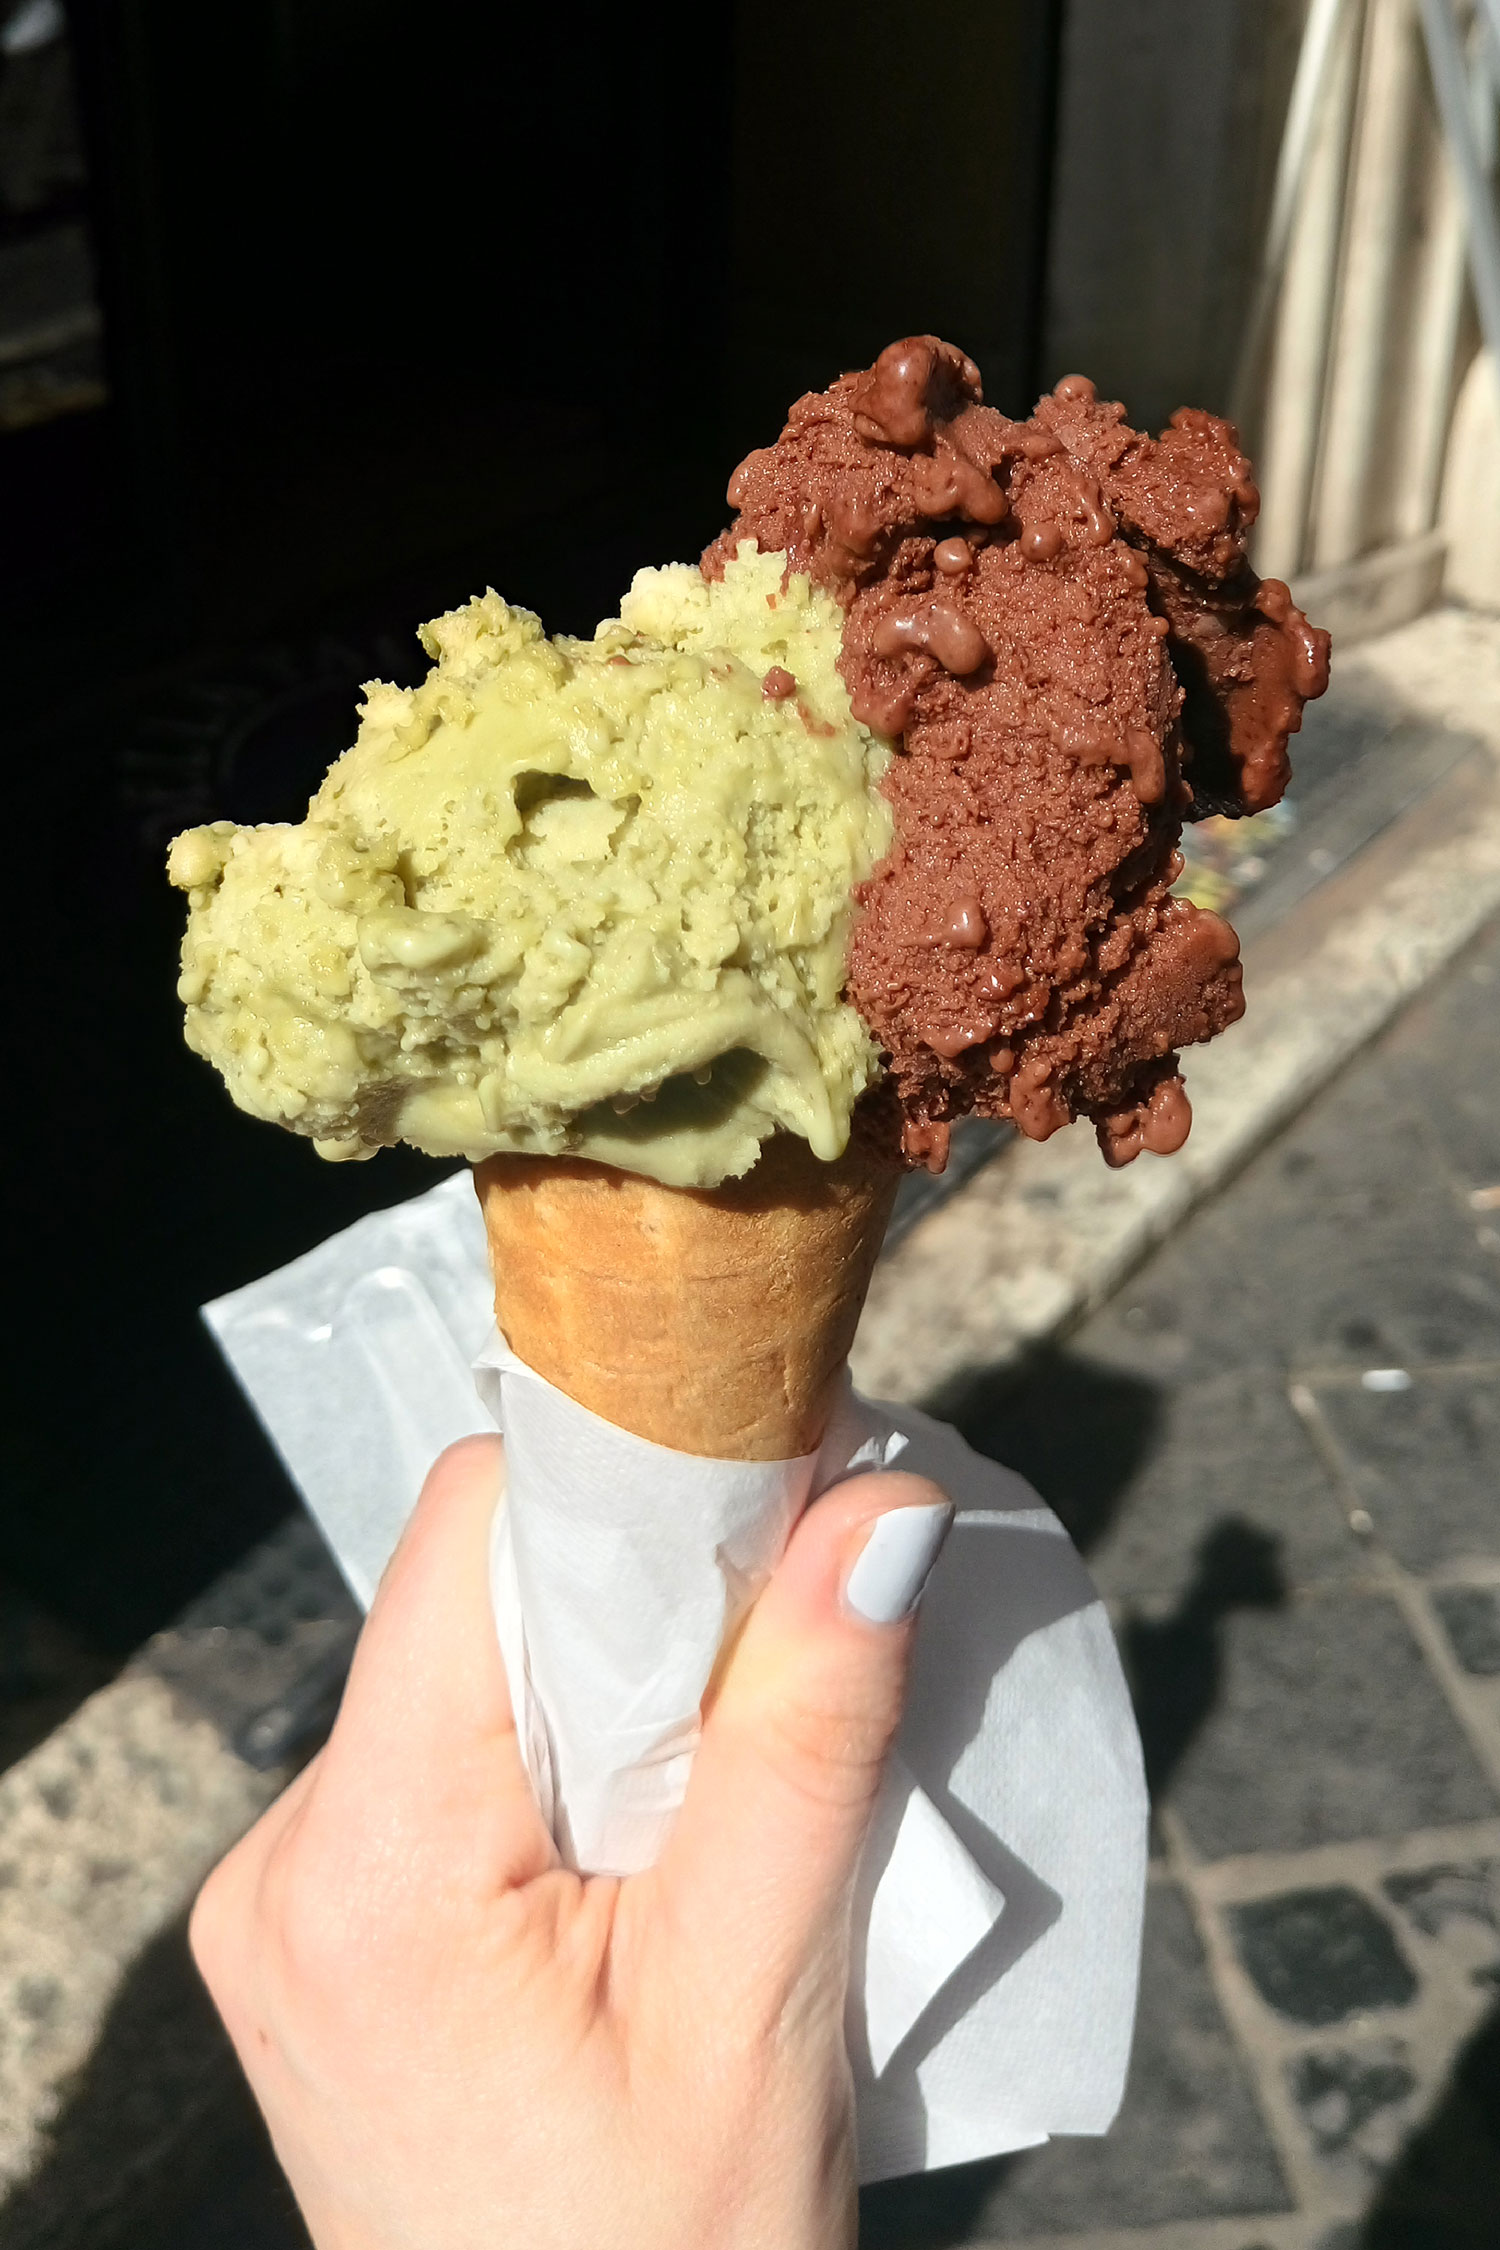 vegan essen in Rom, veganes Eis in der Gelateria della Palma, mein Eis